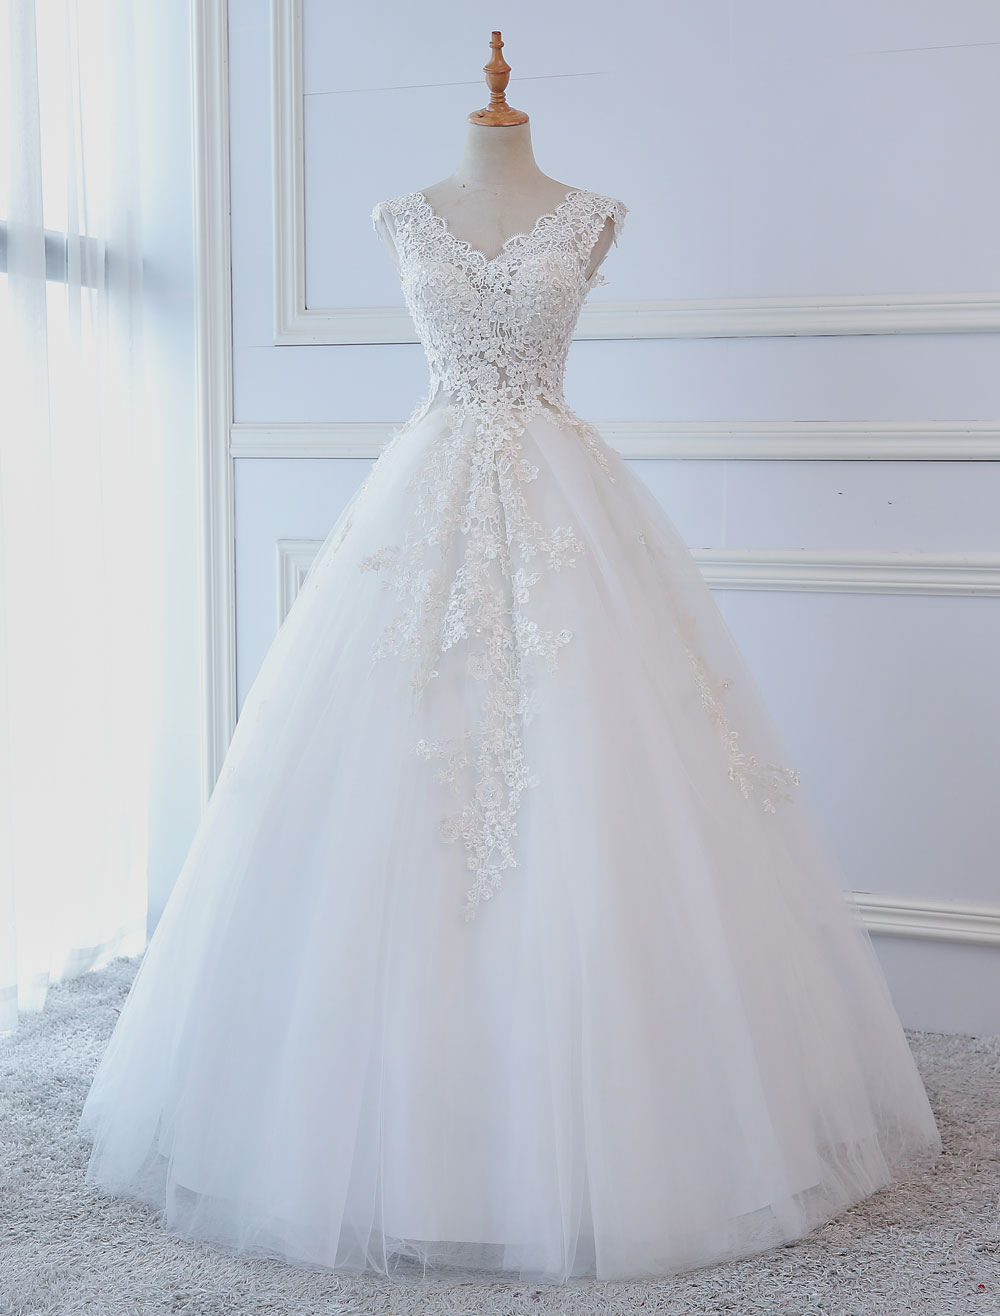 Princess Wedding Dresses Ball Gowns Lace V Neck Sleeveless Floor Length Bridal Gowns